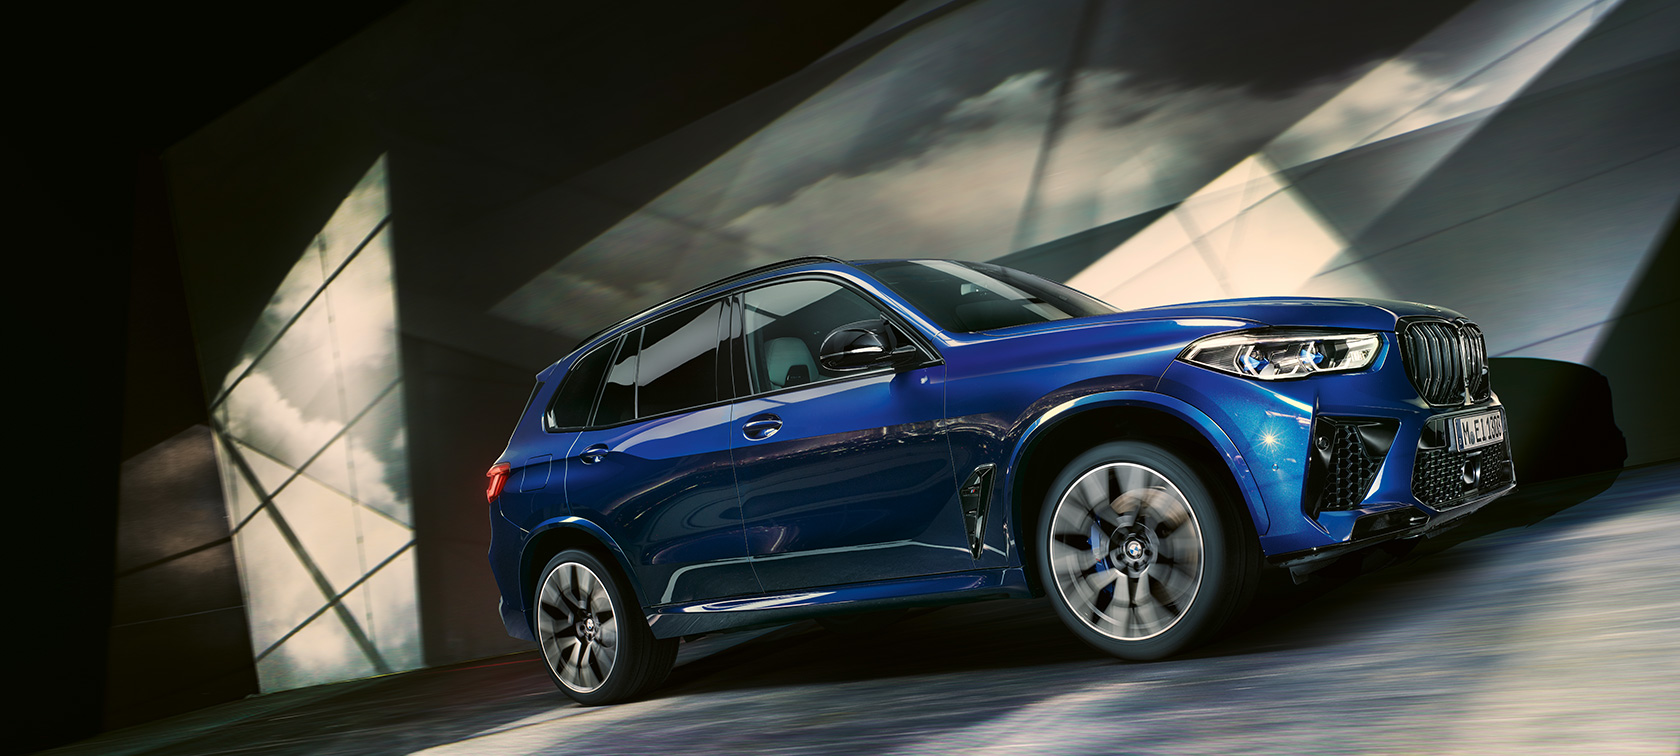 The all-new BMW X5 M ModelsF95 2020